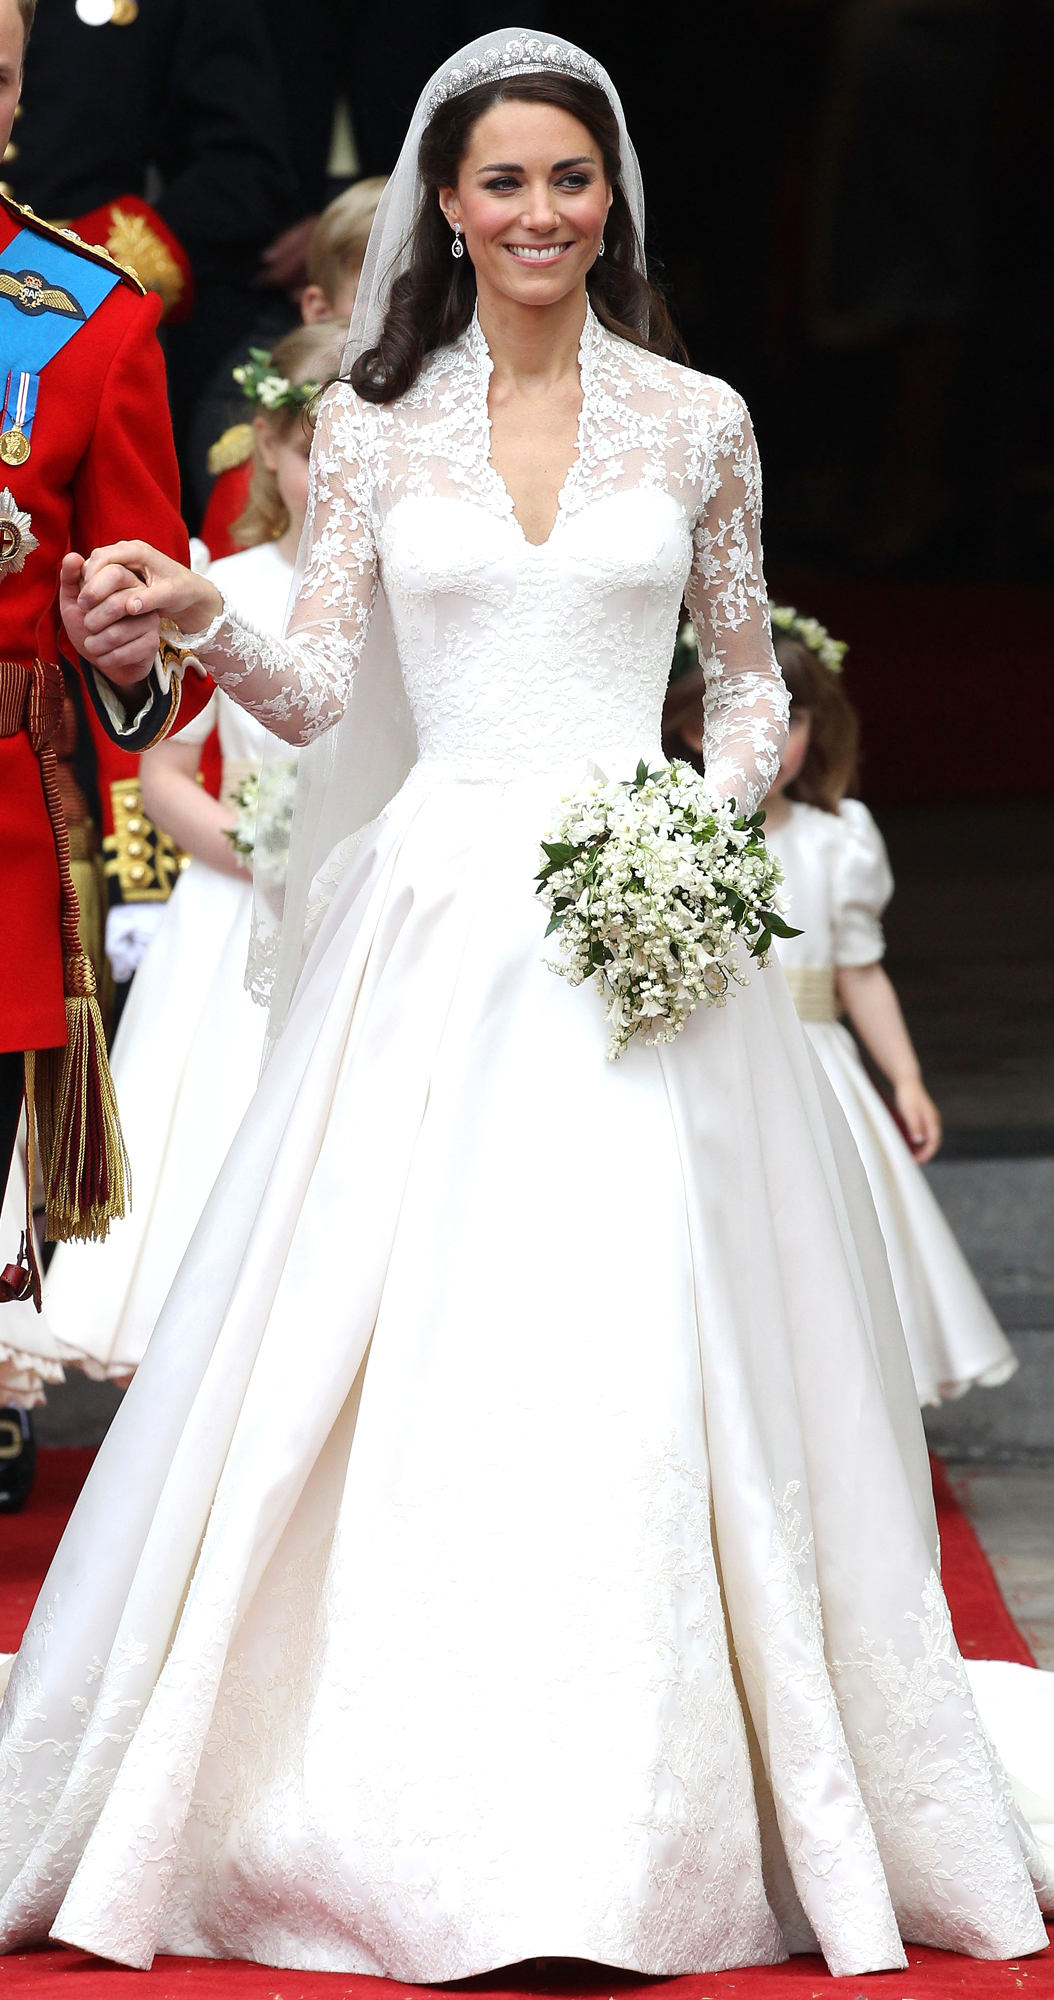 Catherine, Duchess of Cambridge, at her wedding, 2011